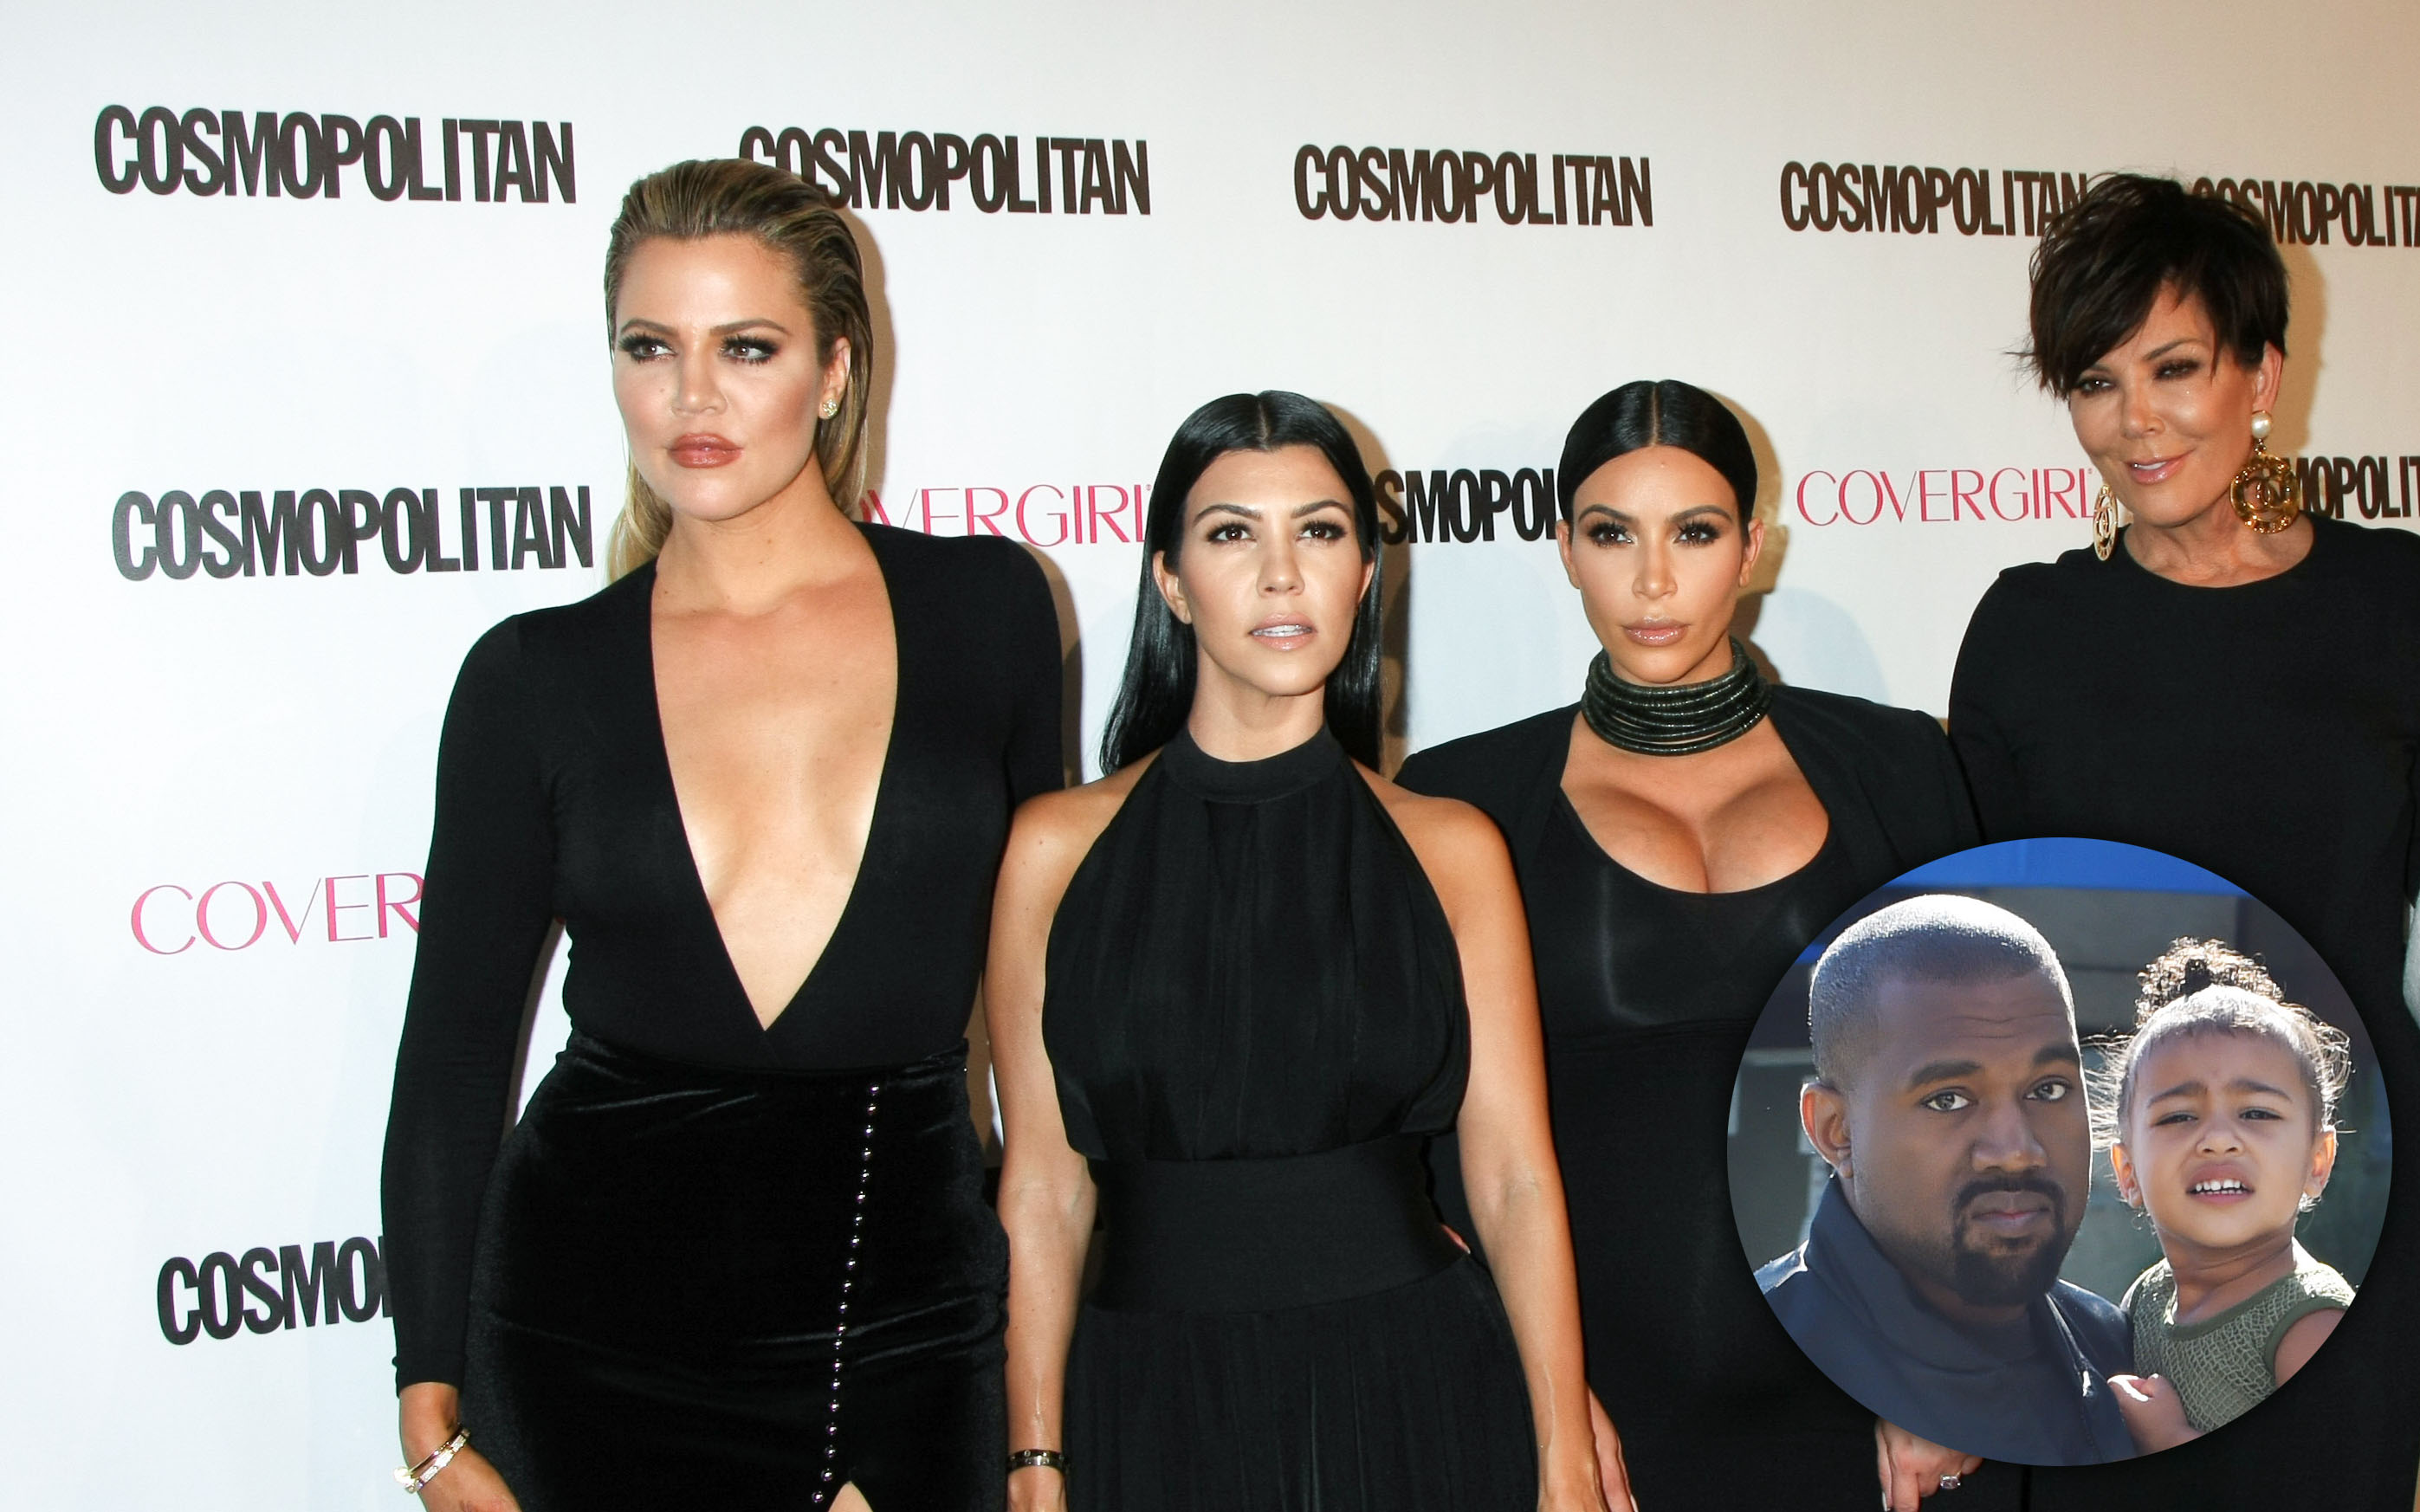 The Kardashian and Jenner women attend Cosmopolitan's 50th Birthday Celebration in West Hollywood, CA